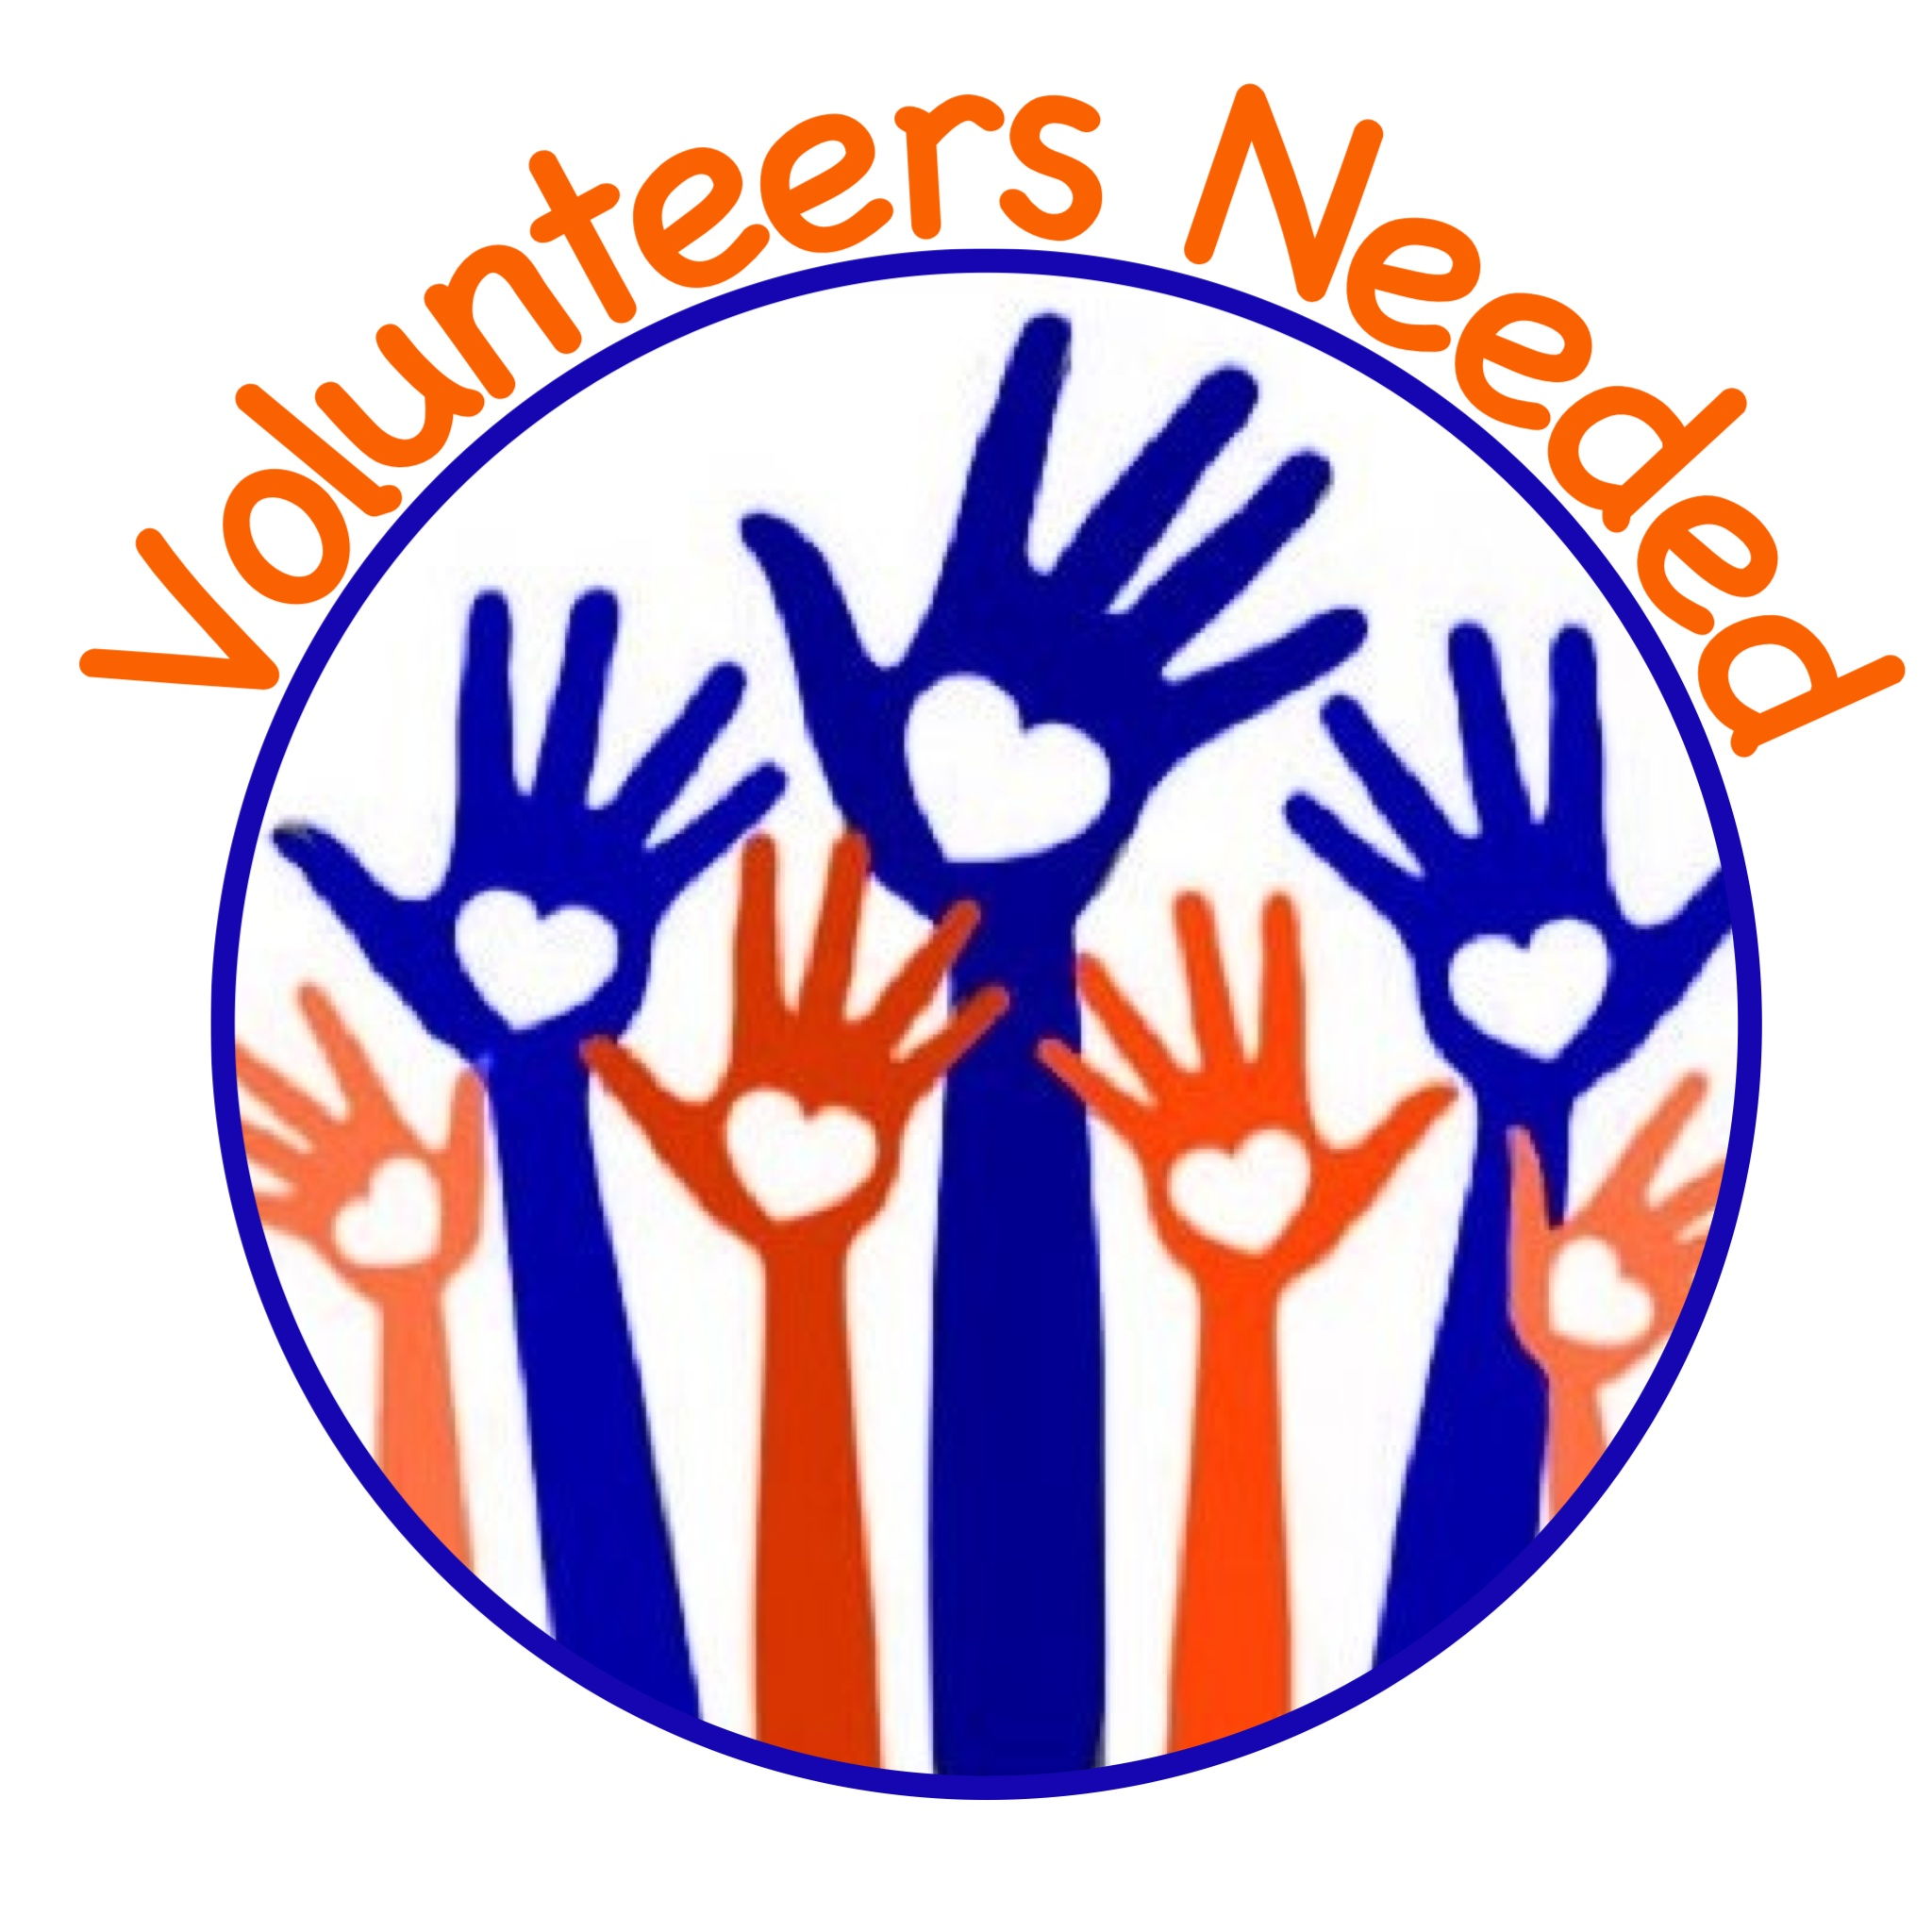 72+ Volunteers Needed Clipart.